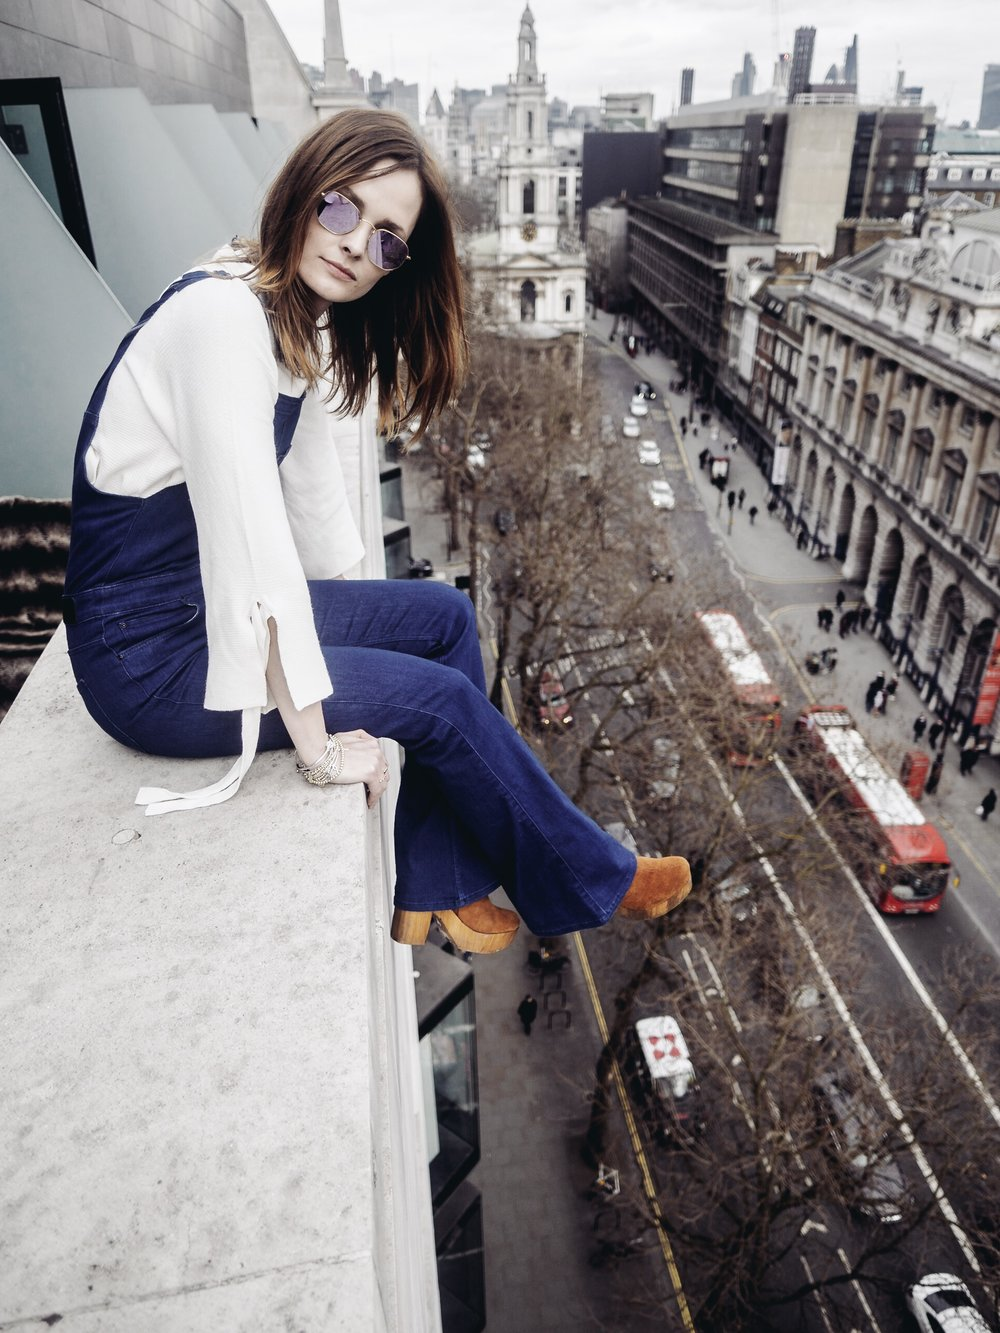 Olympus PEN 12mm f/2.0 Lens Wide Angle Charlotte de Carle Me London Hotel Fashion Week LFW Don't Look Down Balcony Heights